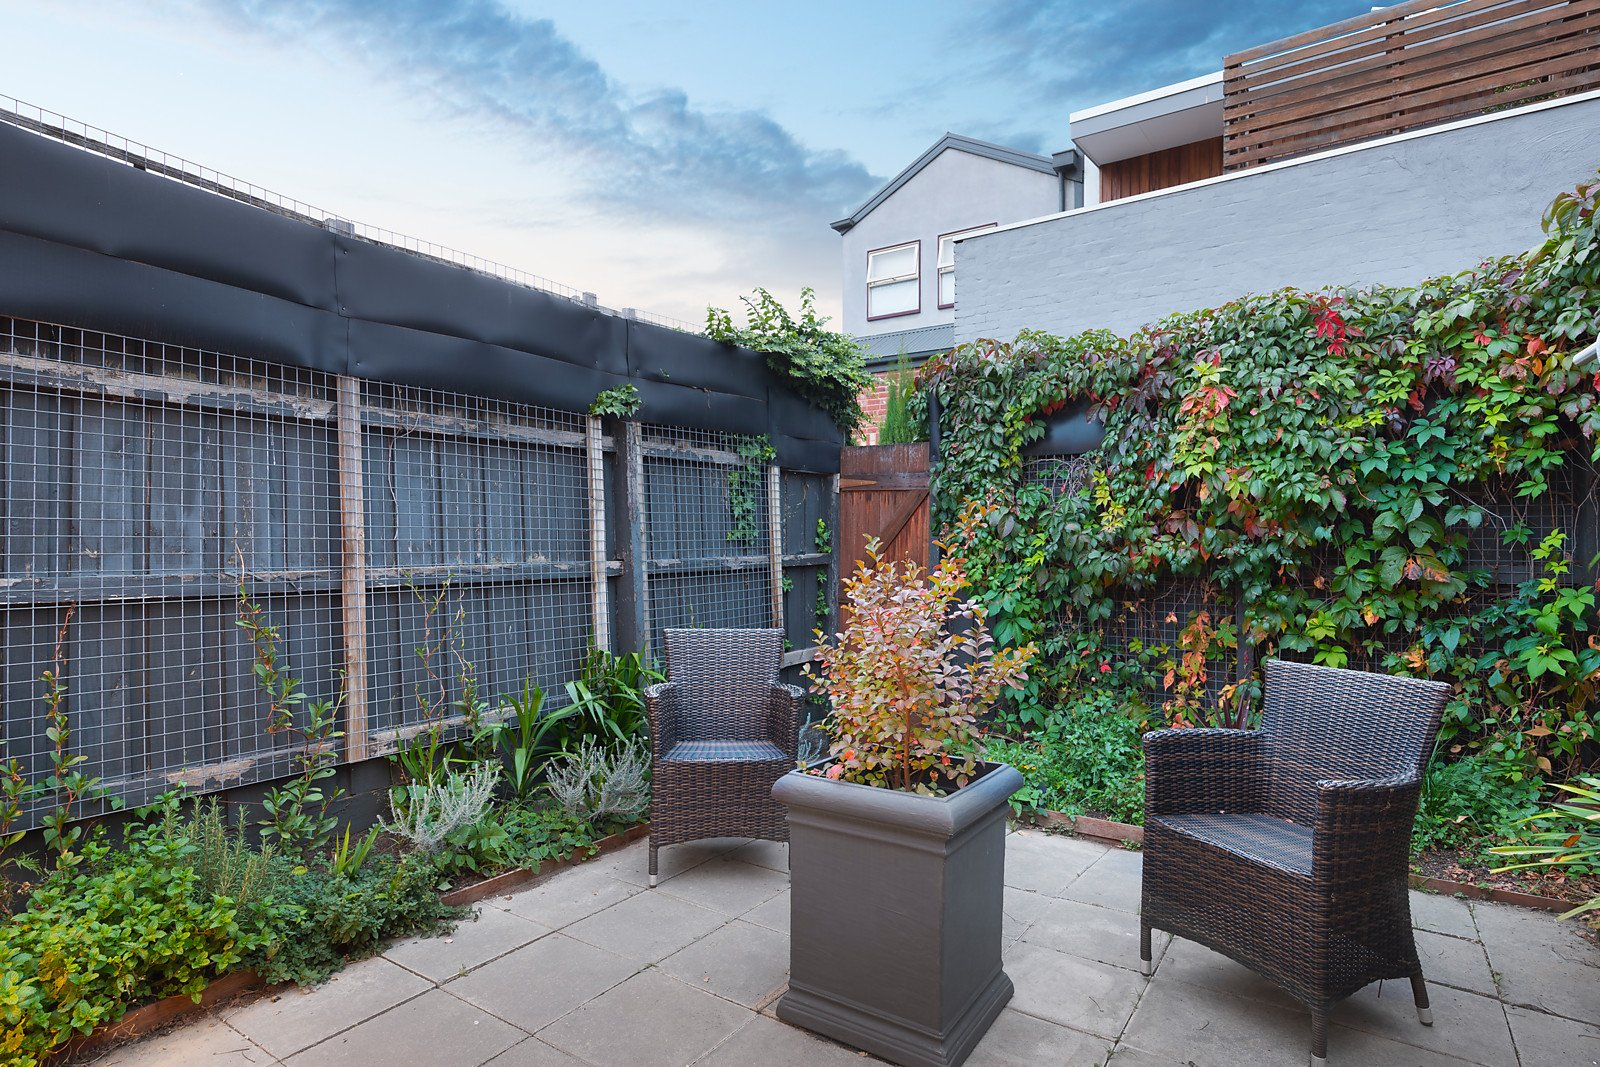 23 Seacombe Street, Fitzroy North, VIC, 3068 image 10